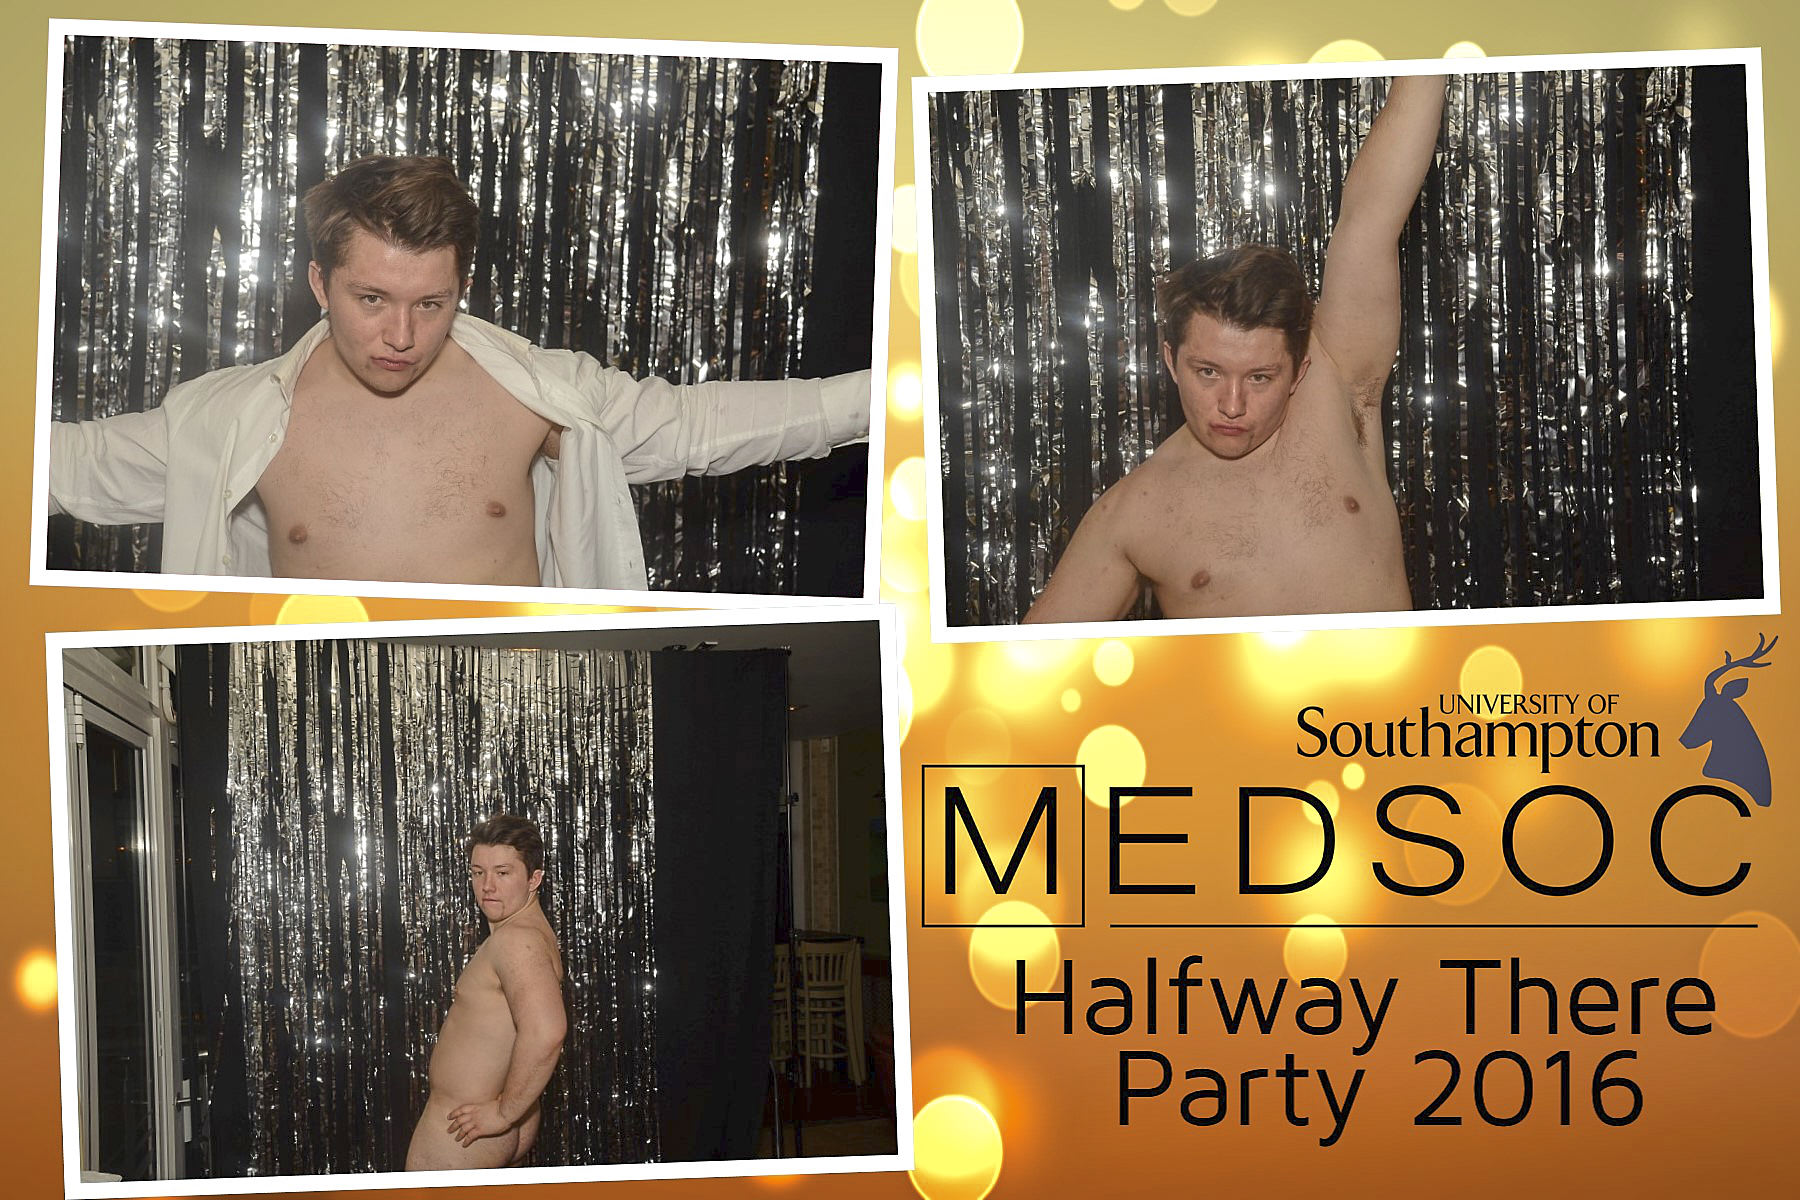 MedSoc Halfway There Party 2016 DS012710.jpg